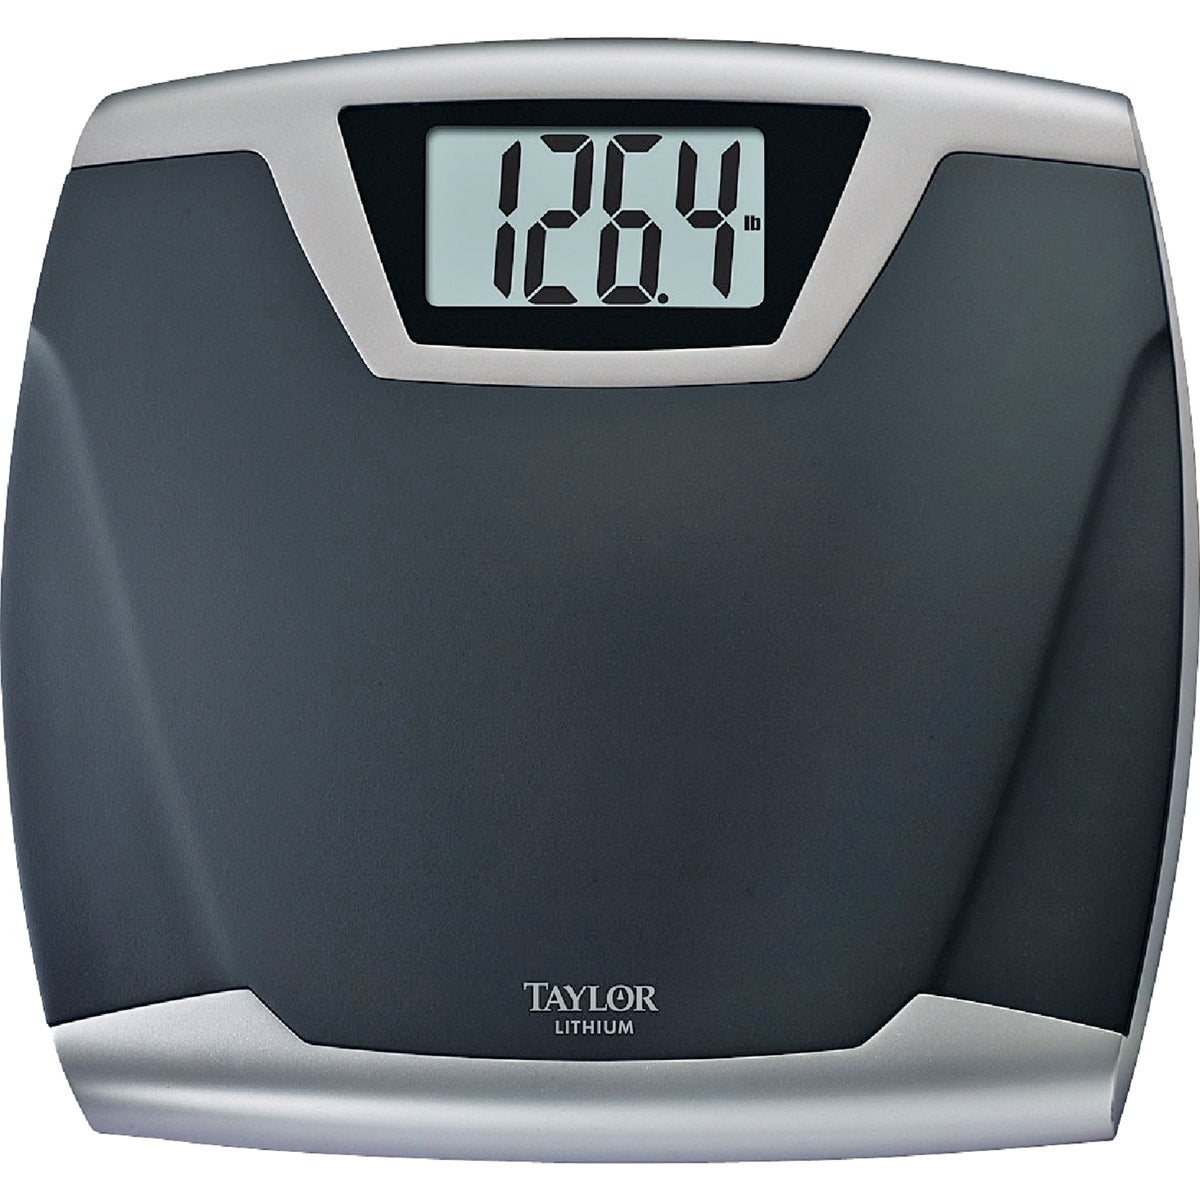 440LB DIGITAL BATH SCALE - 73404072 by Taylor Precision